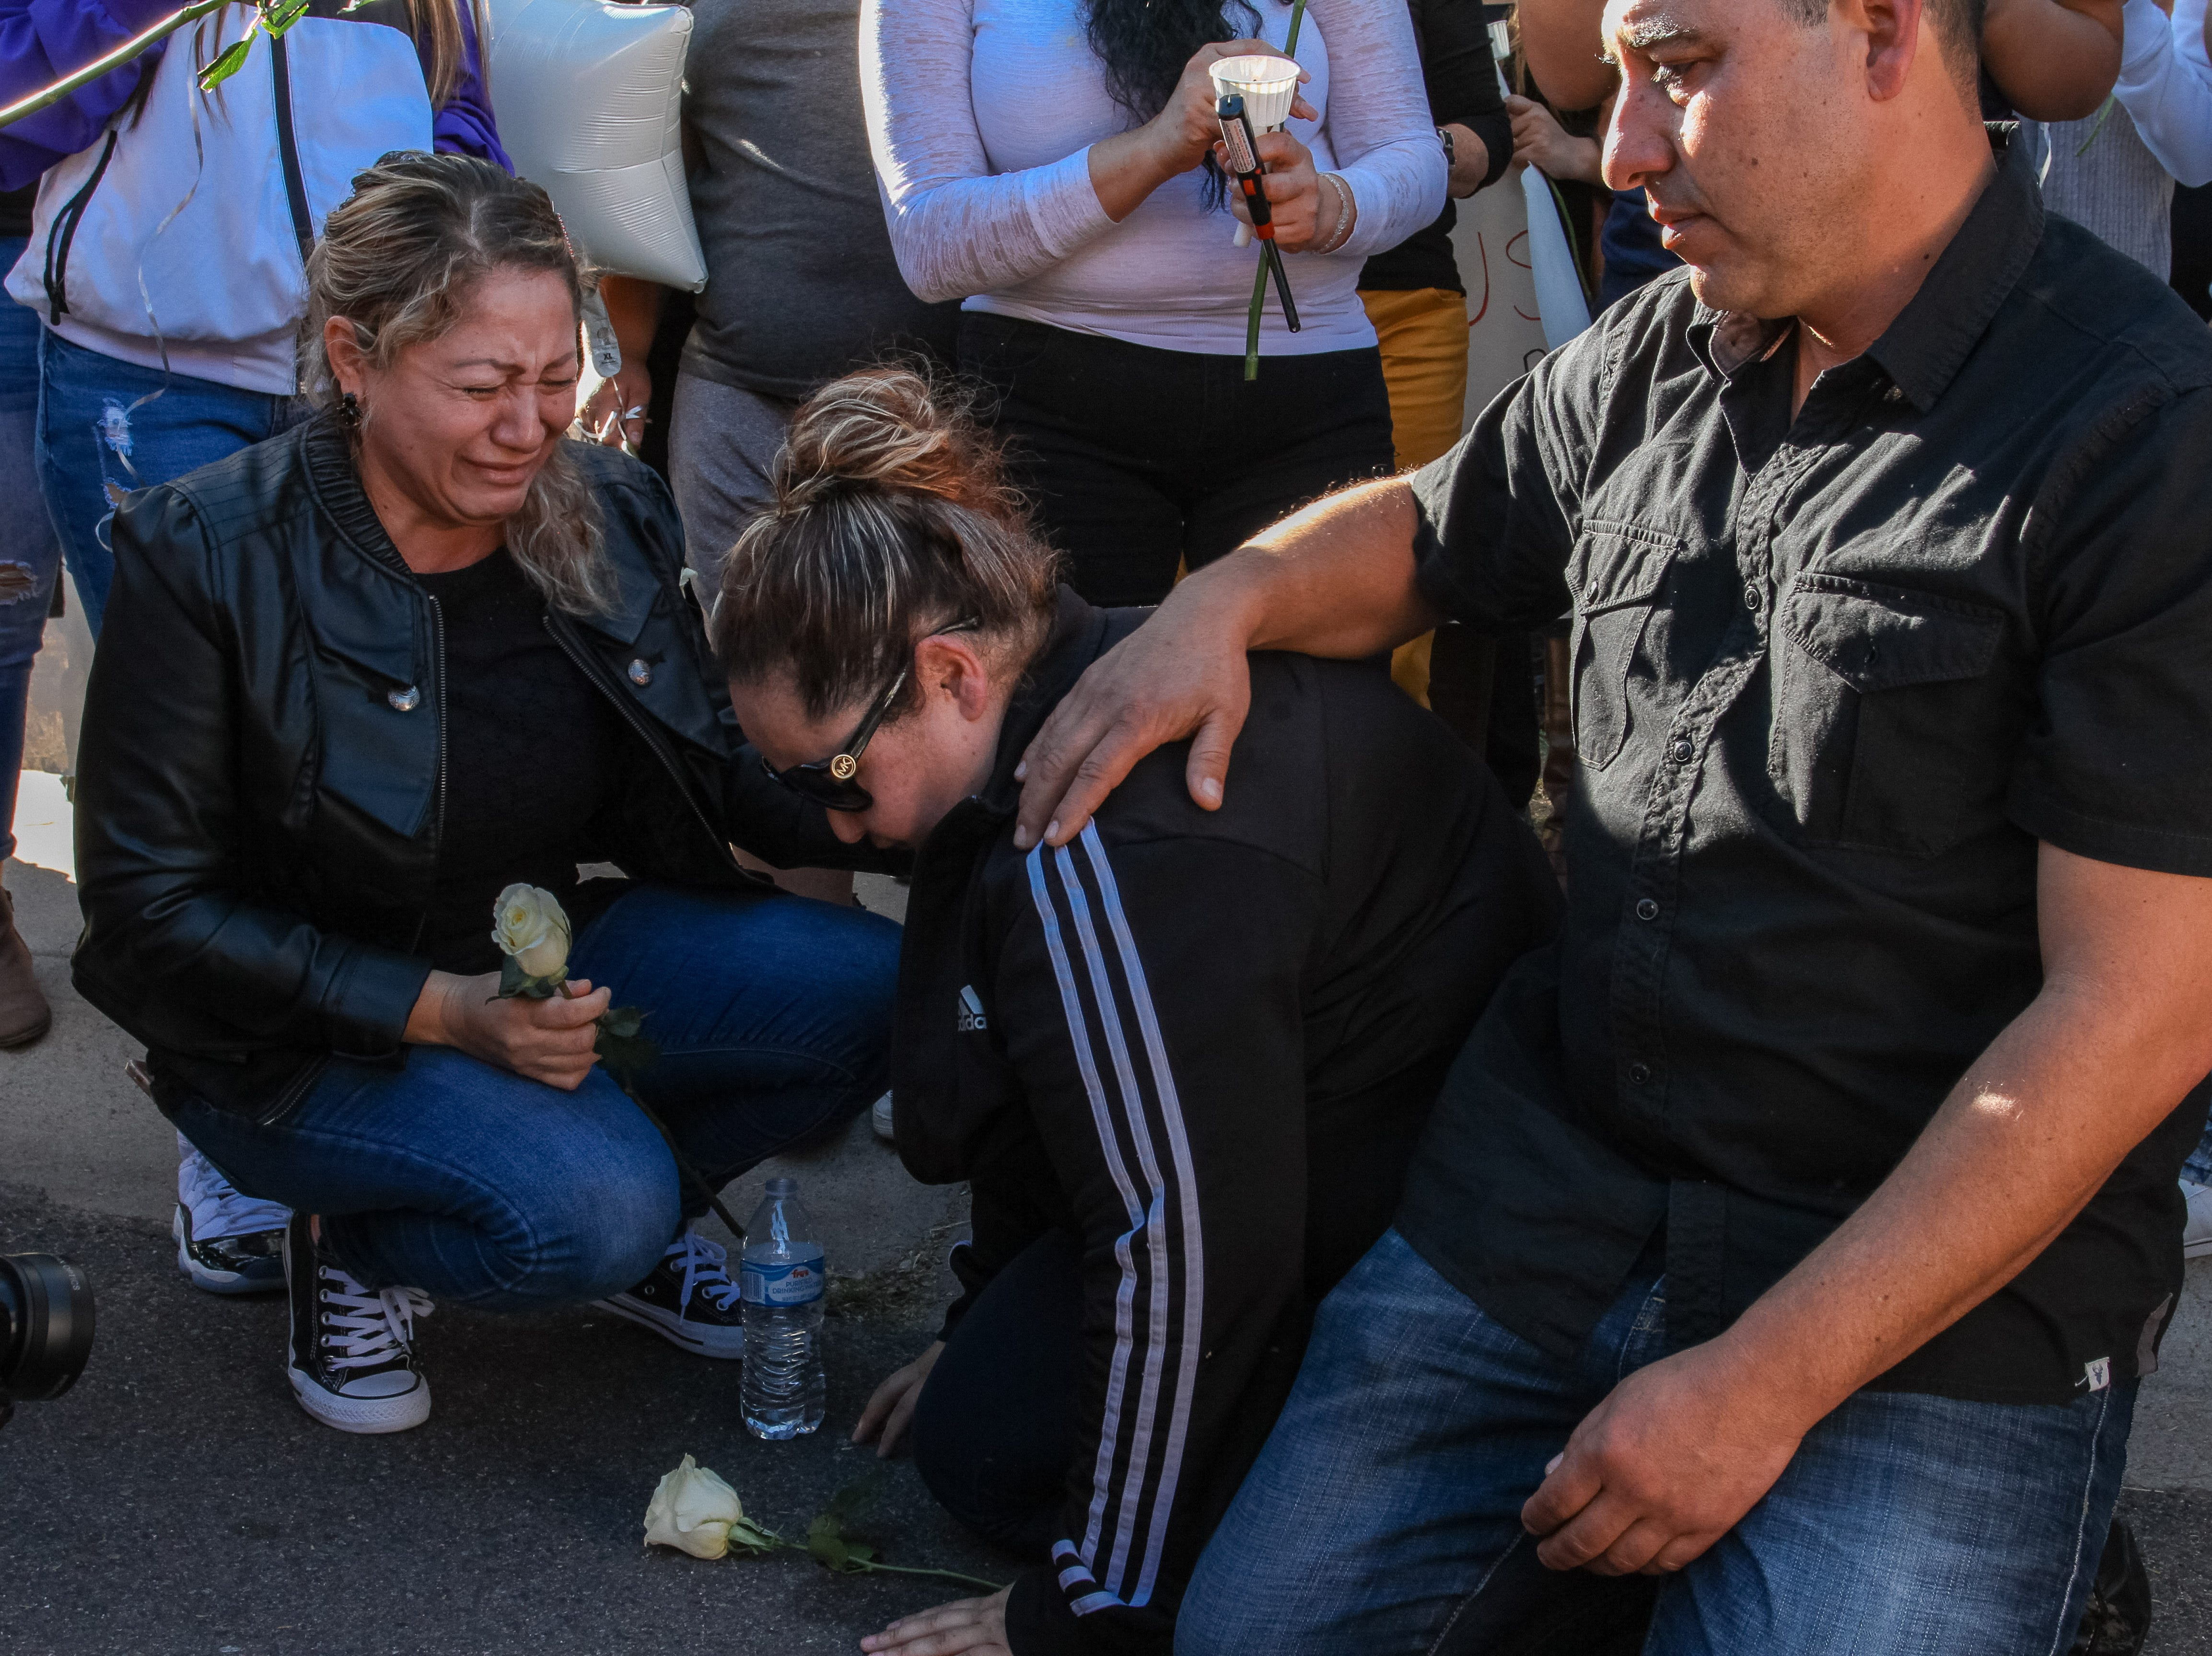 Family and Friends gather together during a vigil on Saturday Jan. 19, 2019 for 14-year-old Antonio who was shot Tuesday afternoon in a residential area north of Baseline Road and east of 48th Street in Tempe.